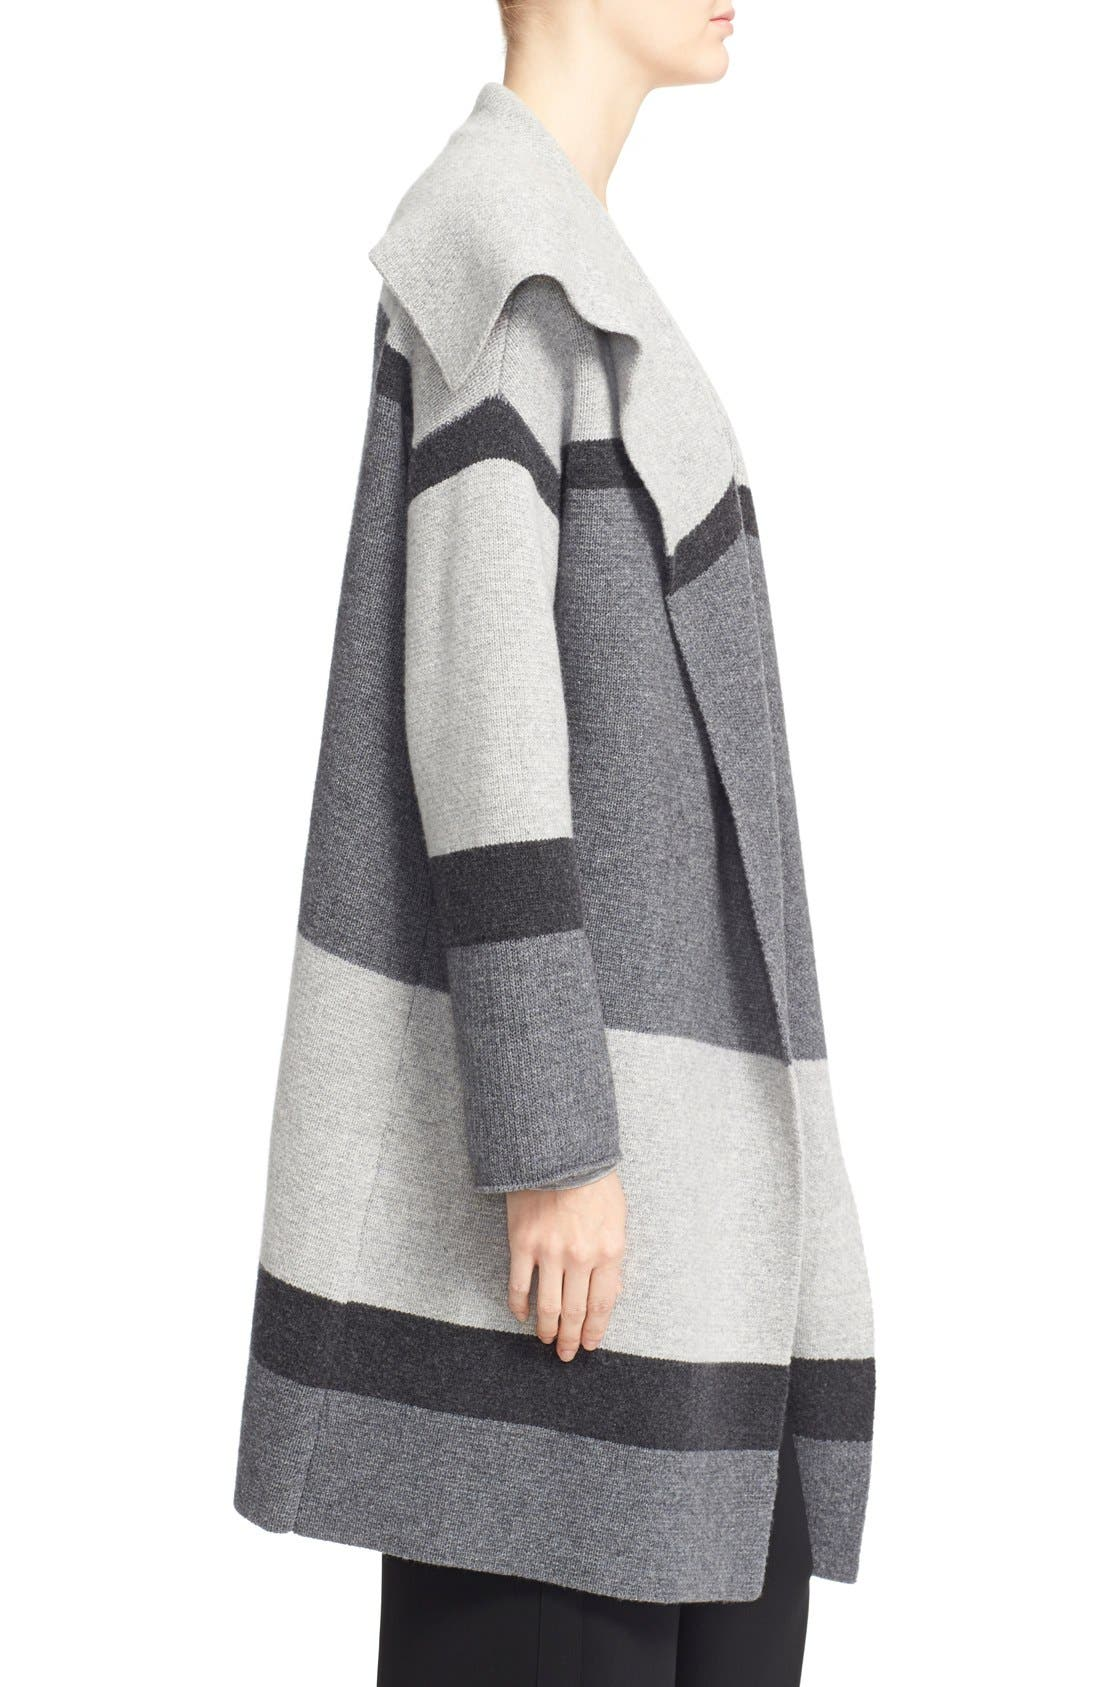 Colorblock Wool & Cashmere Knit Car Coat,                             Alternate thumbnail 4, color,                             Heather Steal/ Stone/ Carbon